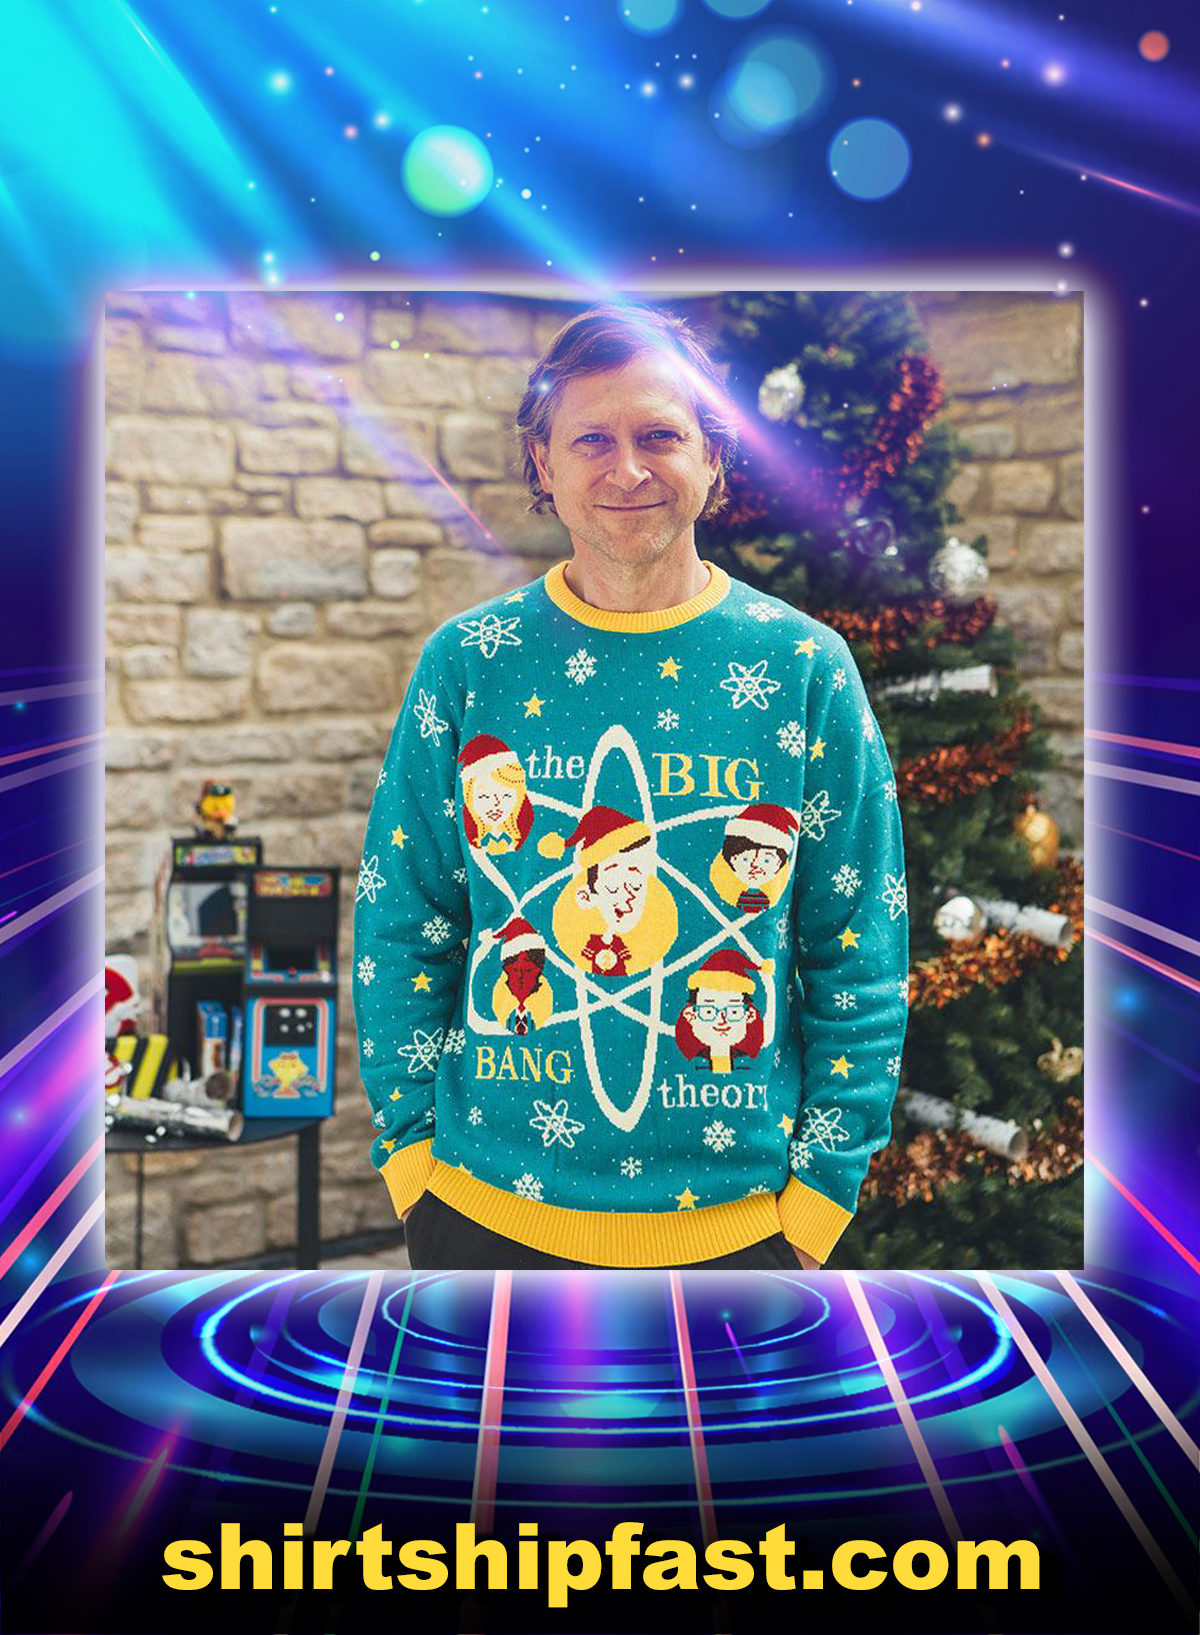 The big bang theory ugly christmas sweater and jumper - Picture 1